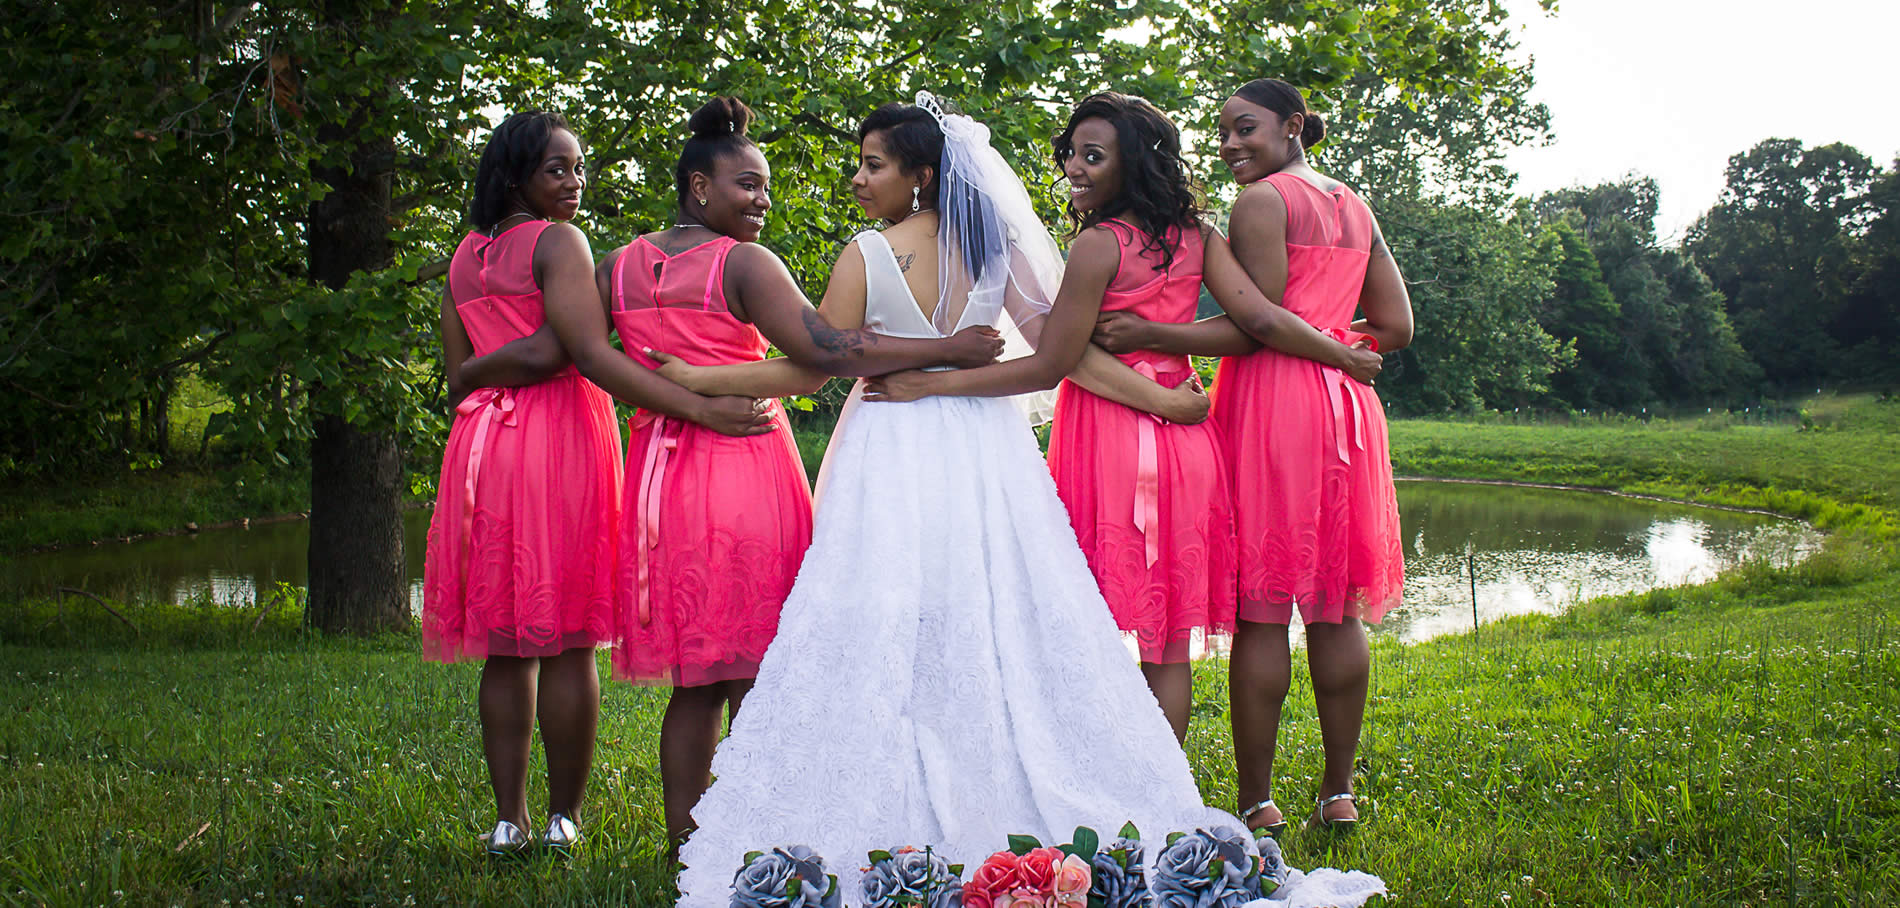 kentucky barn weddings at southern grace - bride and bridesmaids in pink